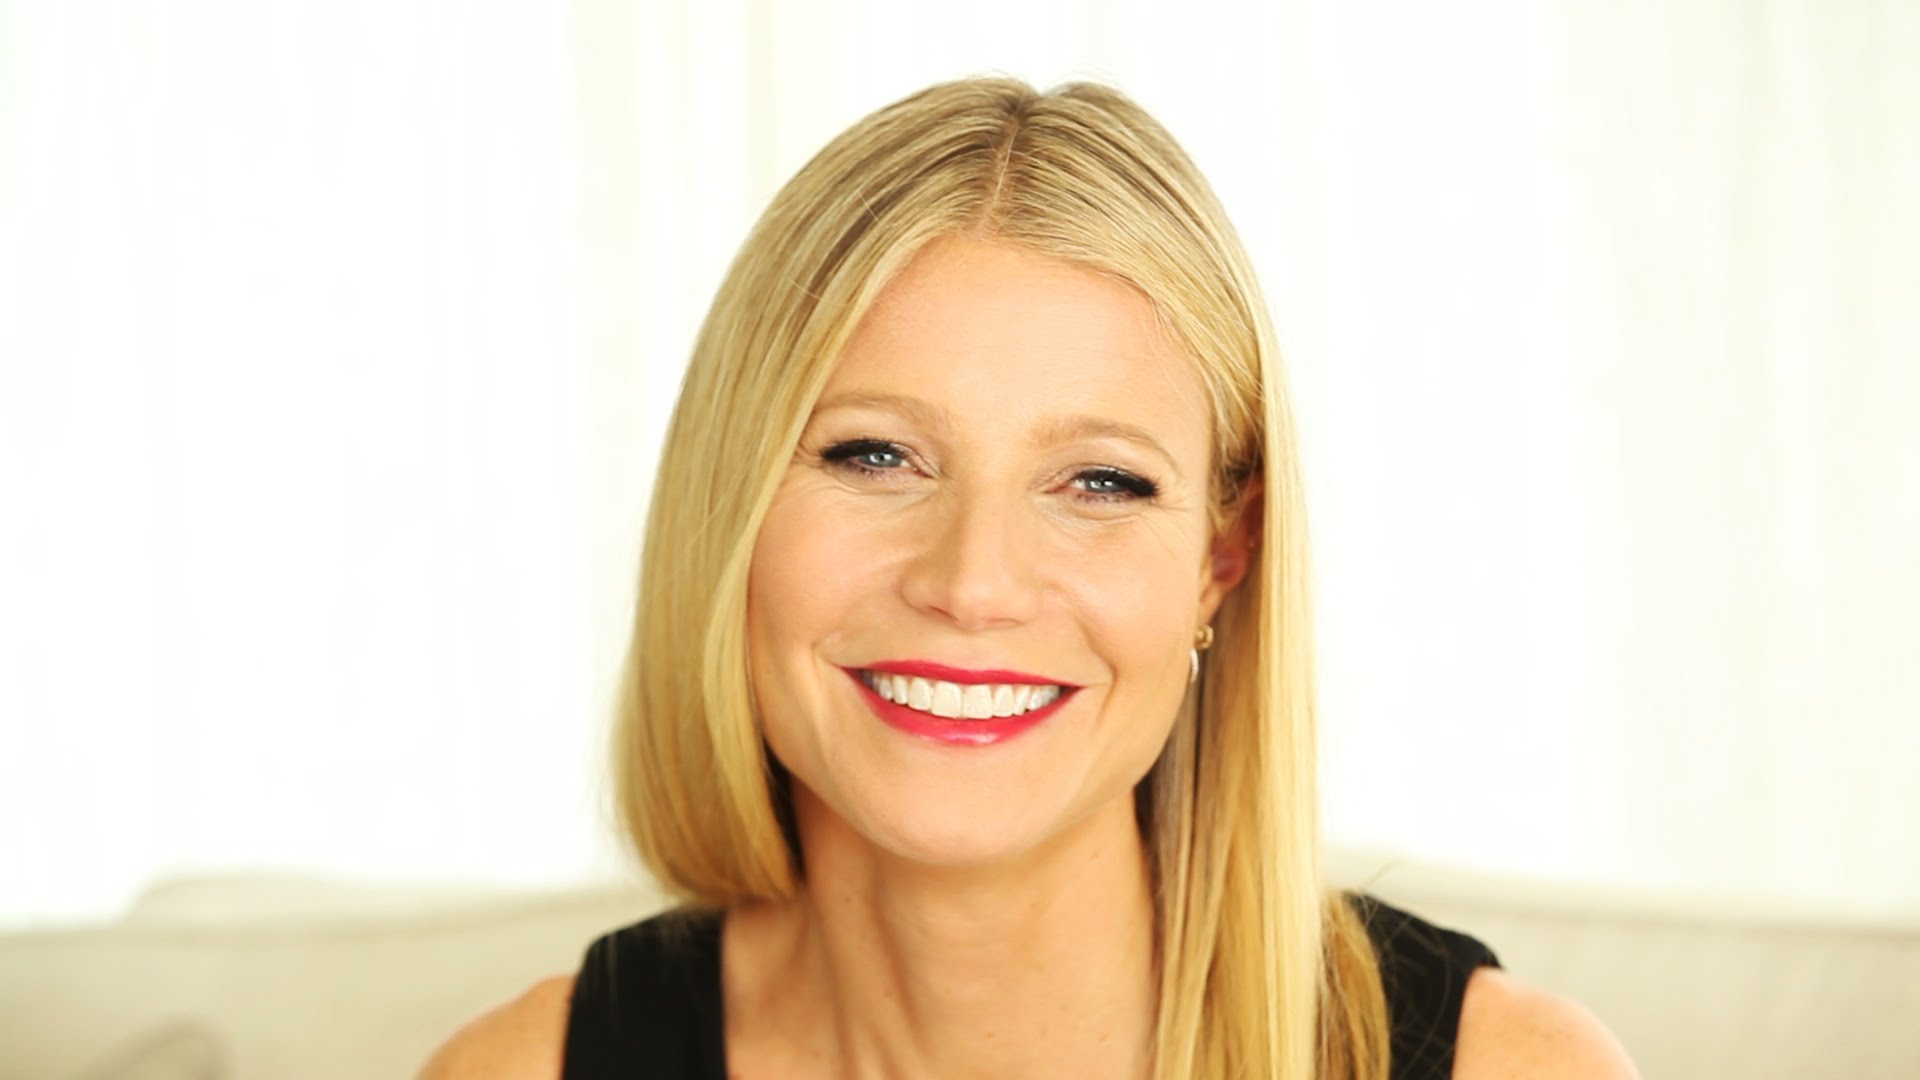 Gwyneth Paltrow loves French fries | Social News XYZ Gwyneth Paltrow